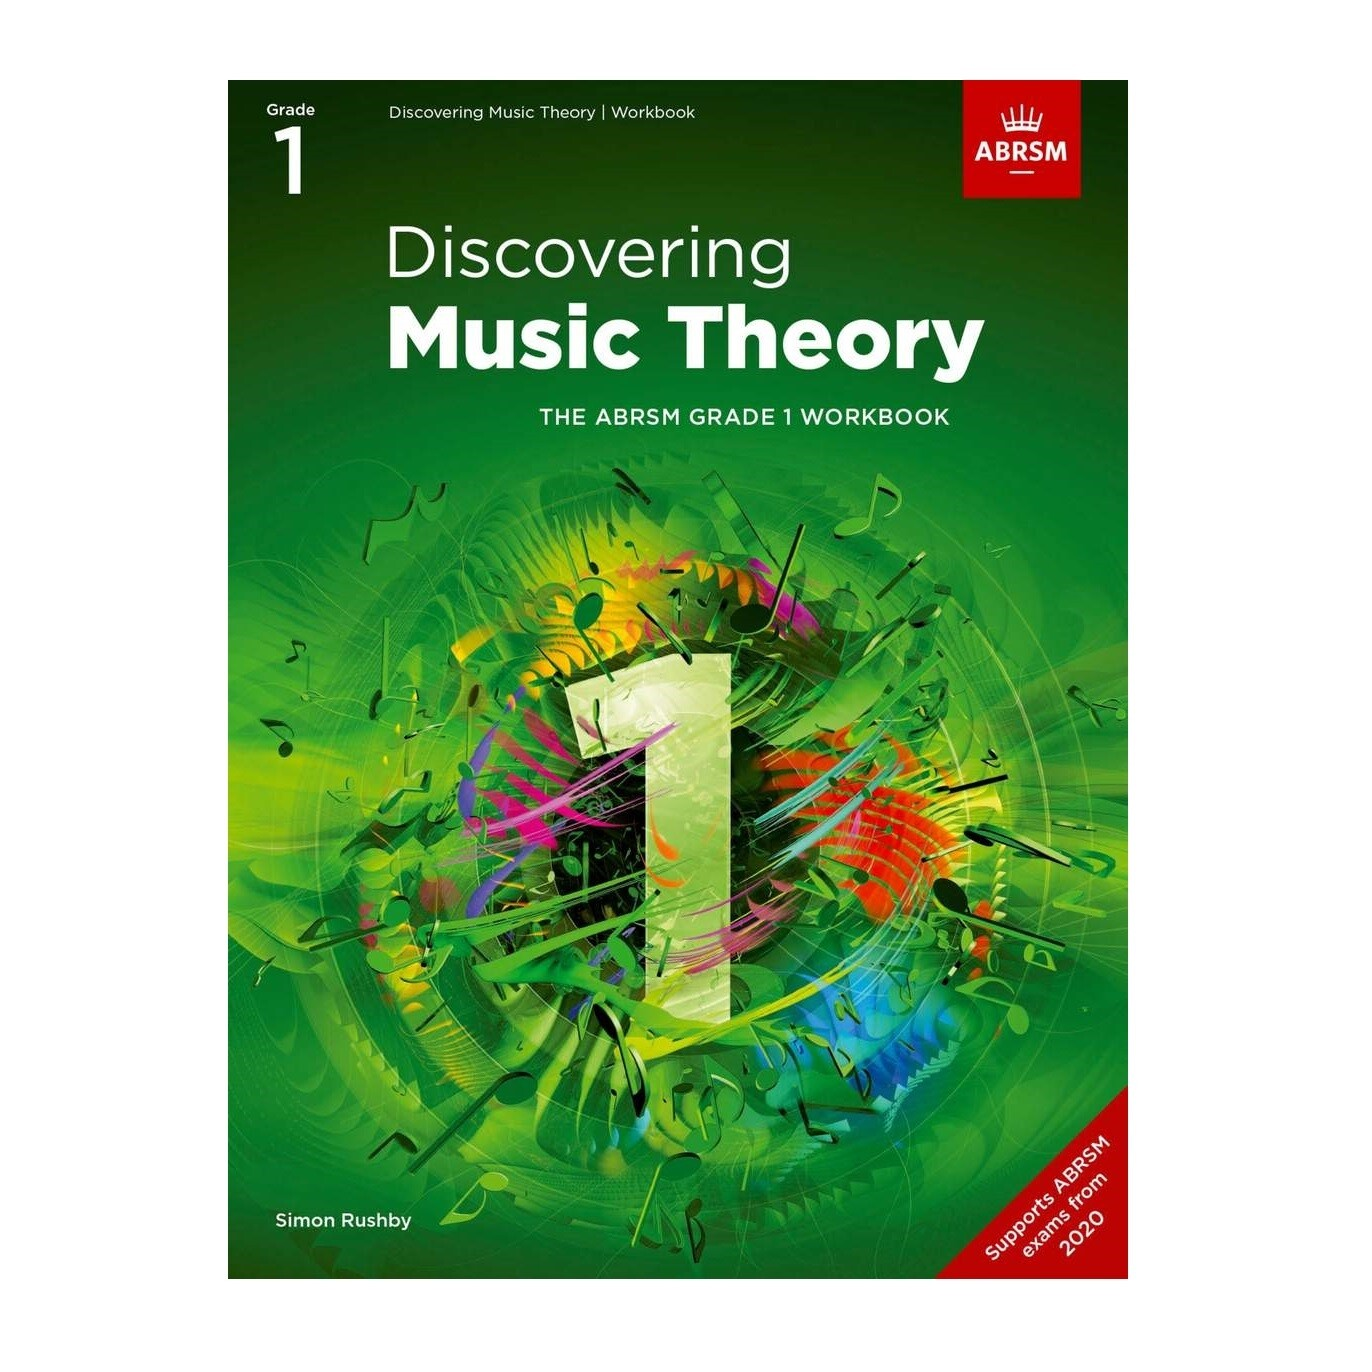 ABRSM Discovering Music Theory Book -  Grade 1